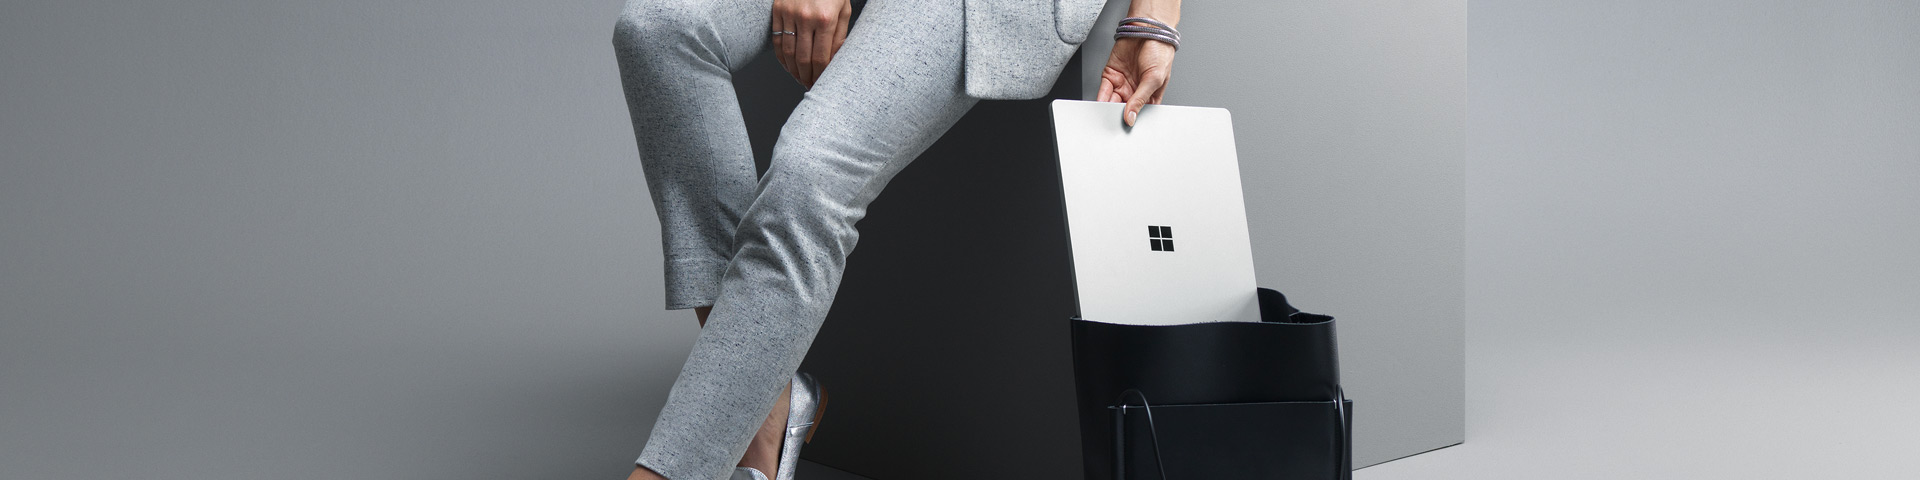 Woman sliding a Surface Laptop into her bag.